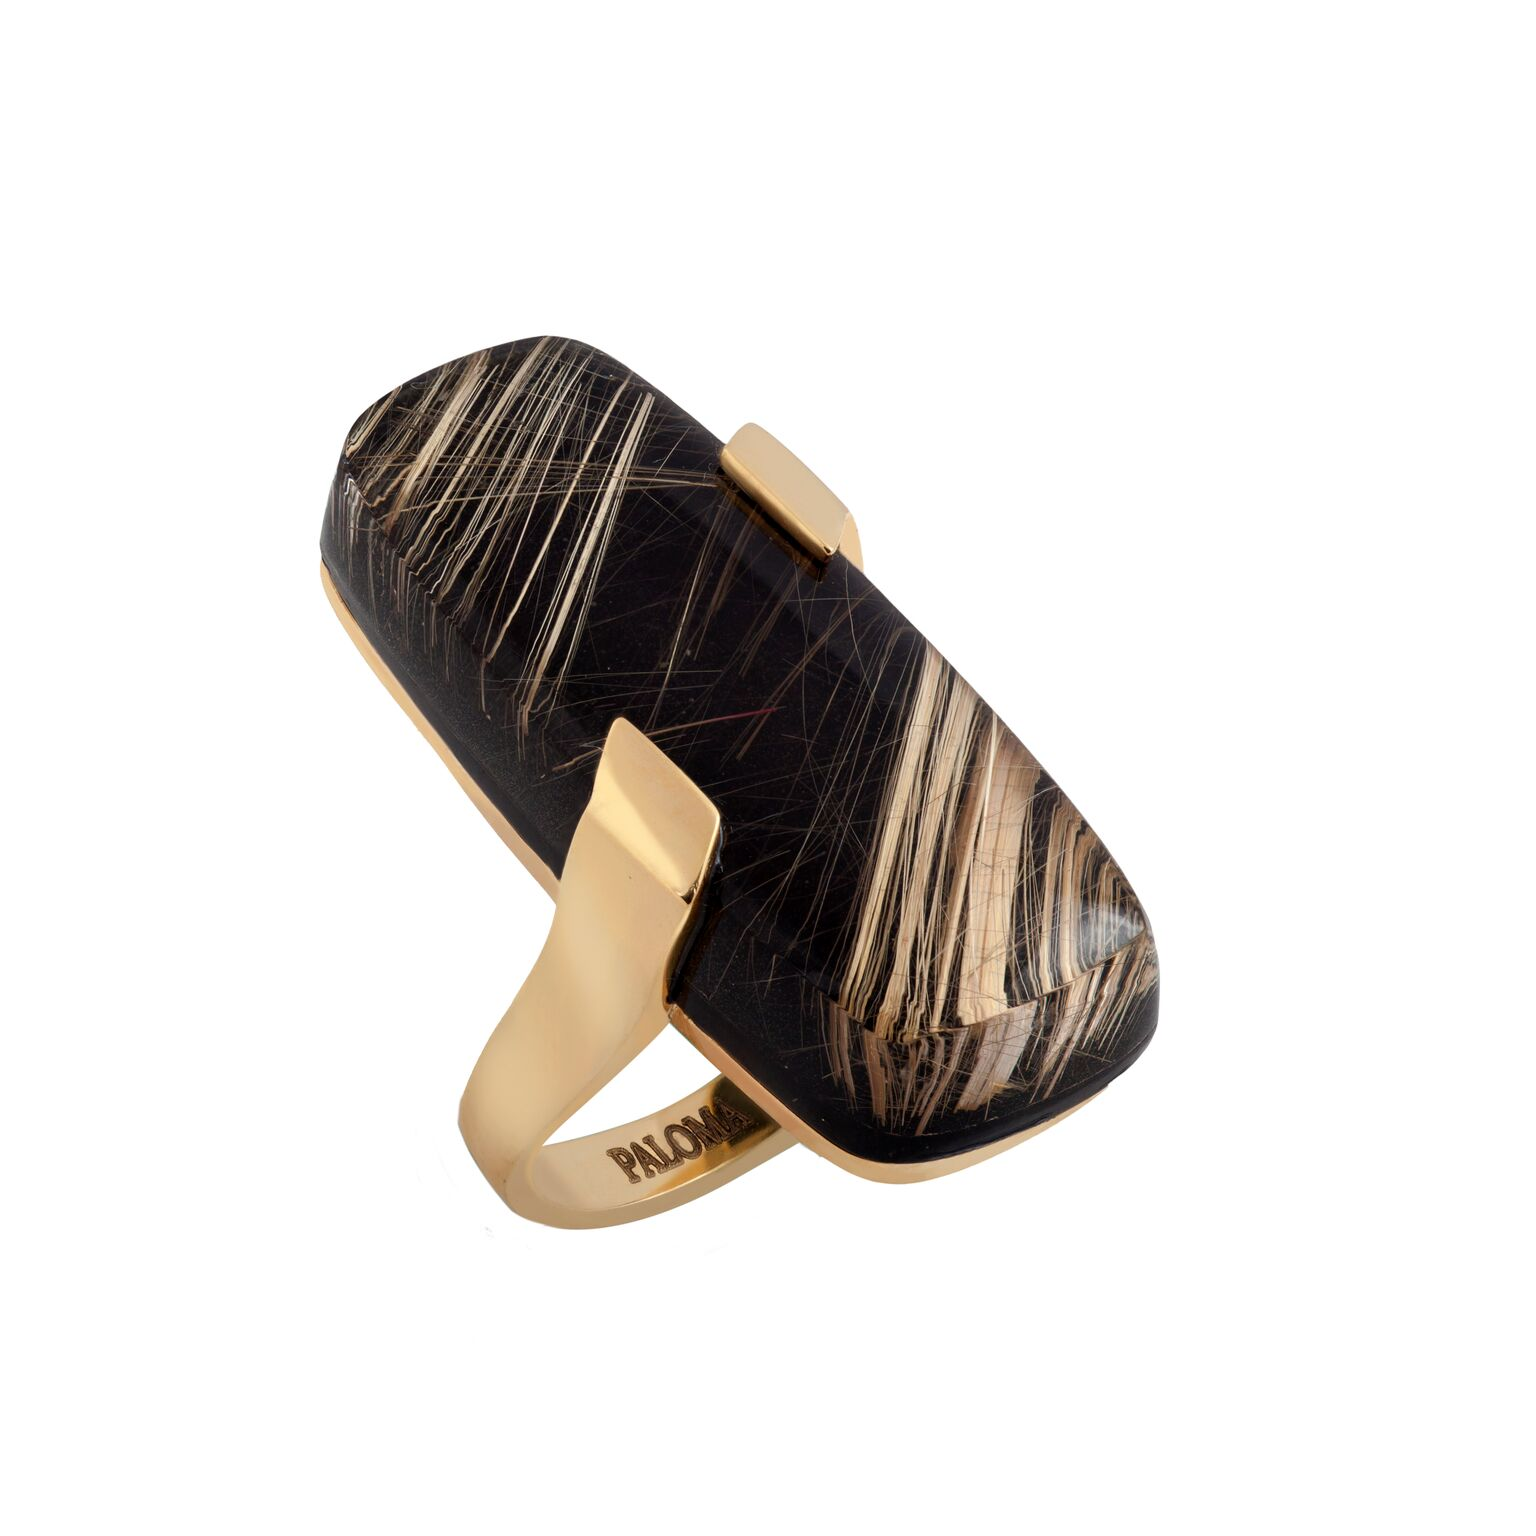 Rutilated quartz, backed with black jade, set in 18k yellow gold ring